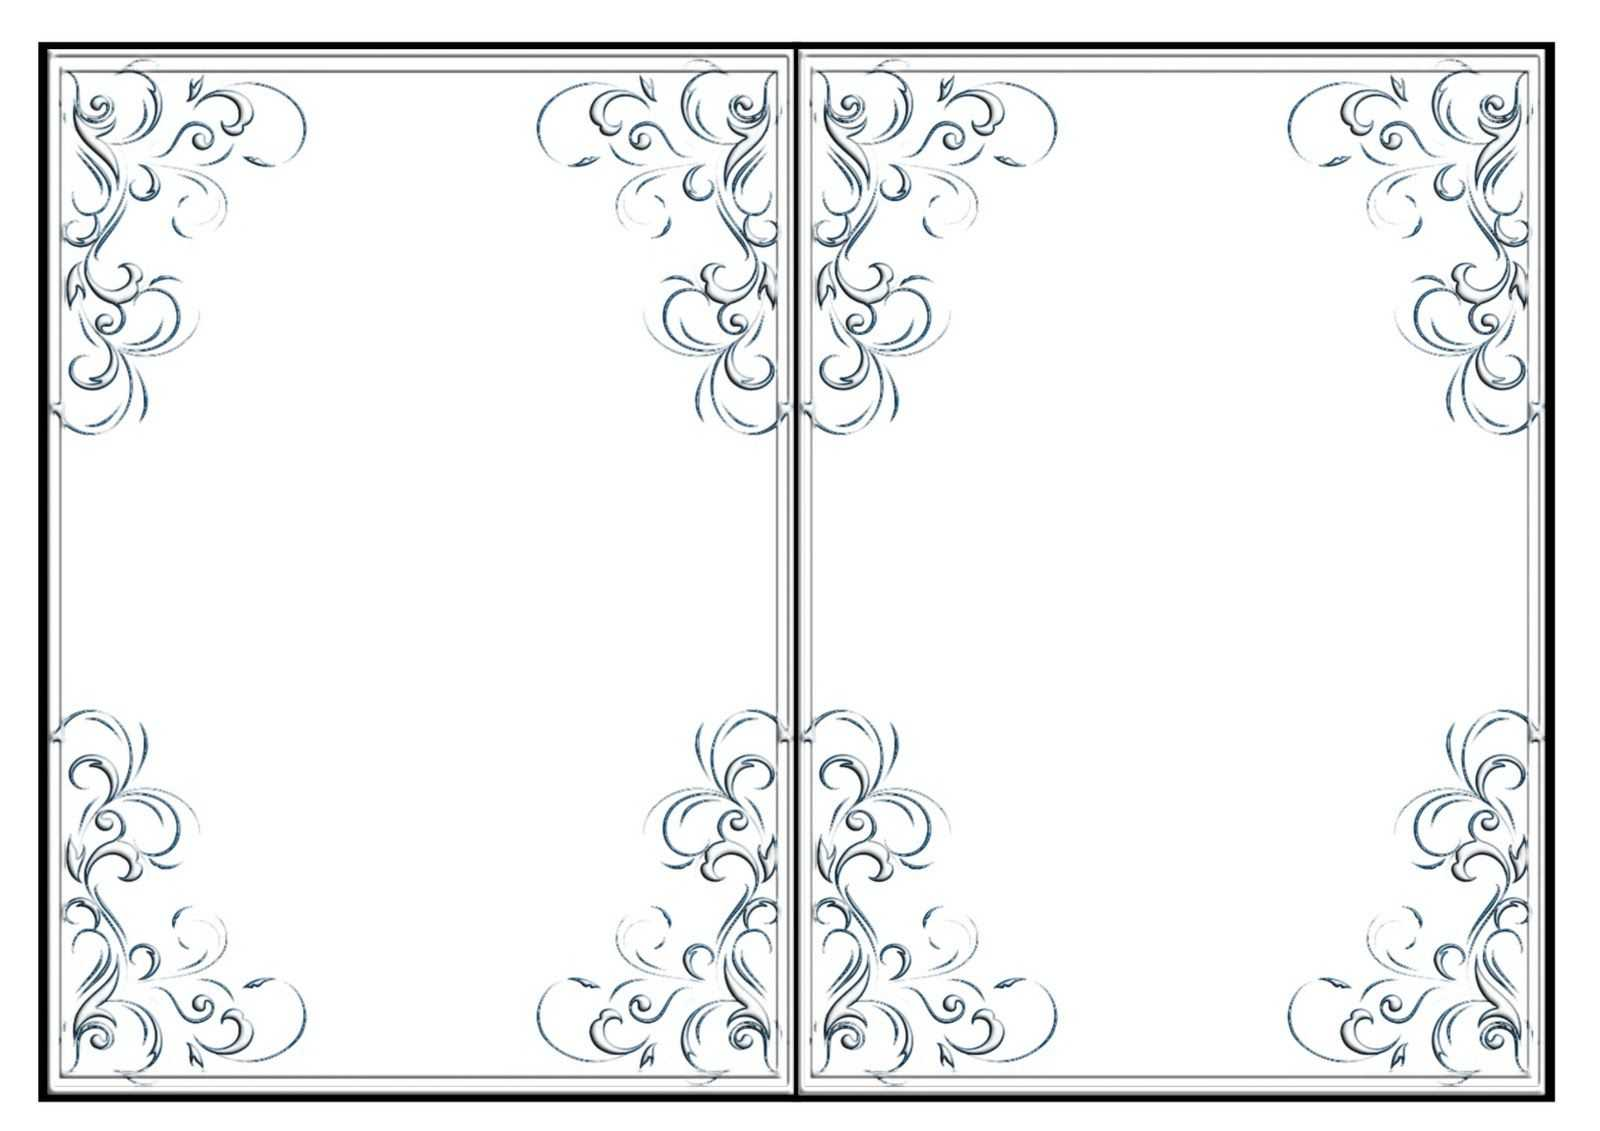 002 Free Printable Quarter Fold Card Template Imnettle Pertaining To Quarter Fold Card Template